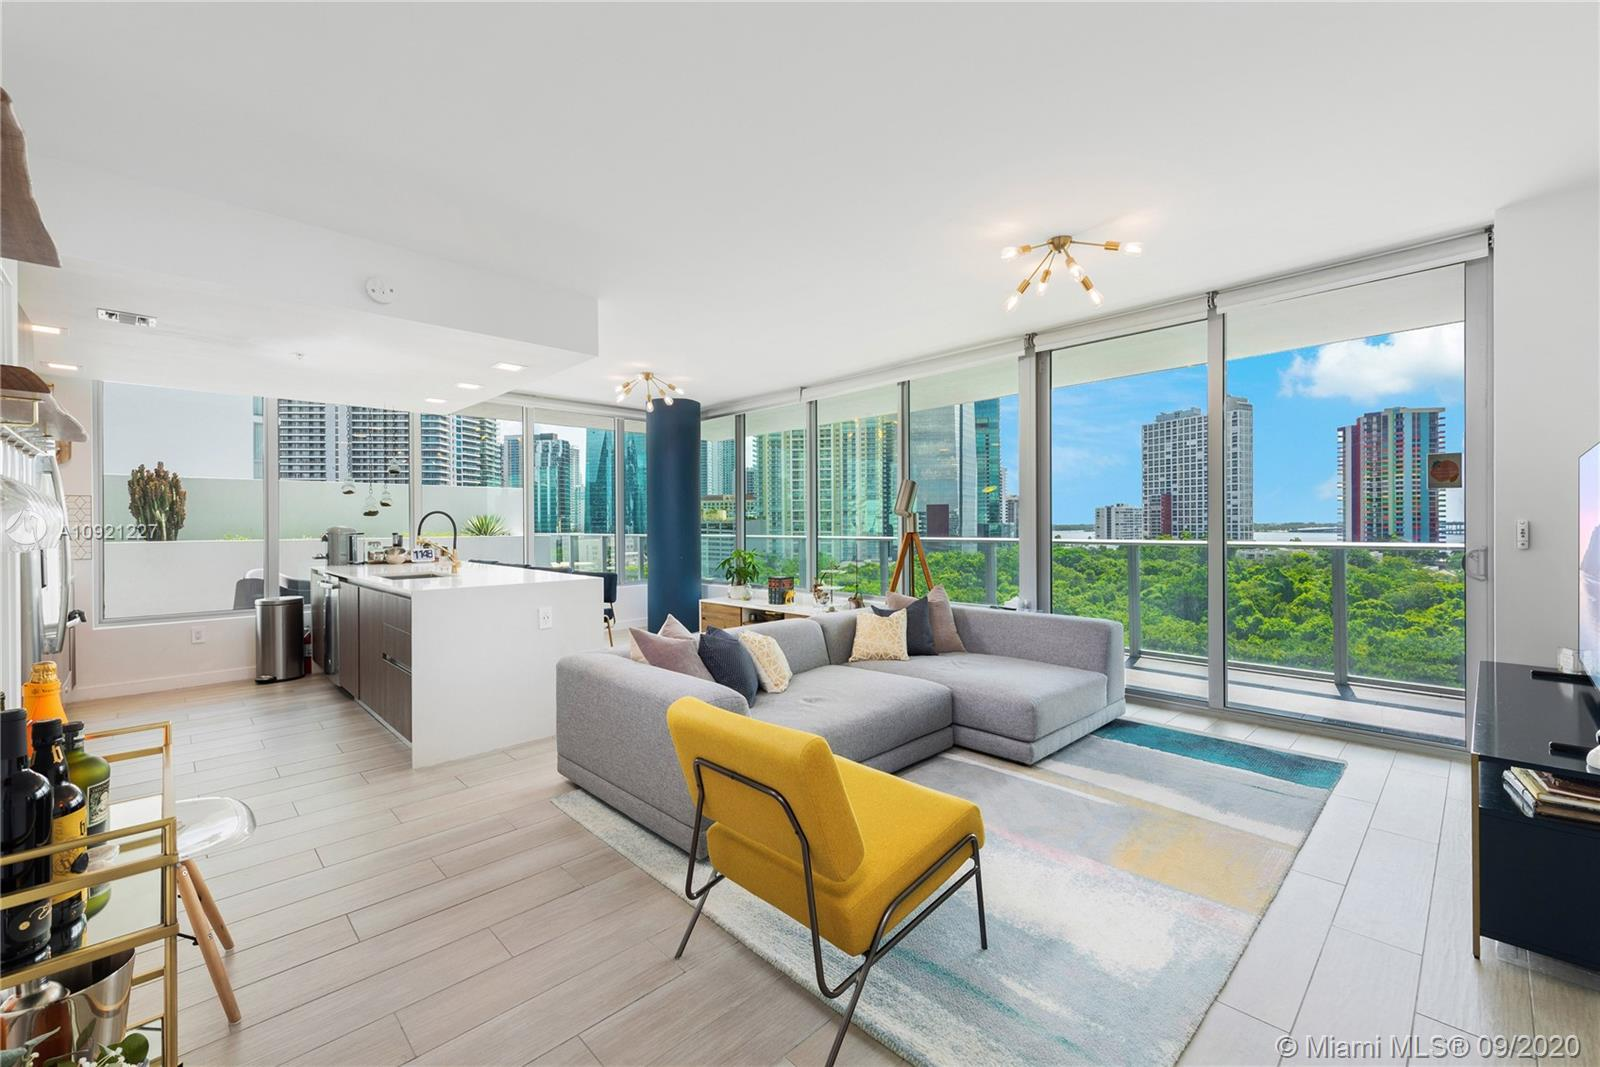 Spectacular 3 BD, 3.5 BA corner residence at Le Parc Brickell Condo, designed by world renowned arch